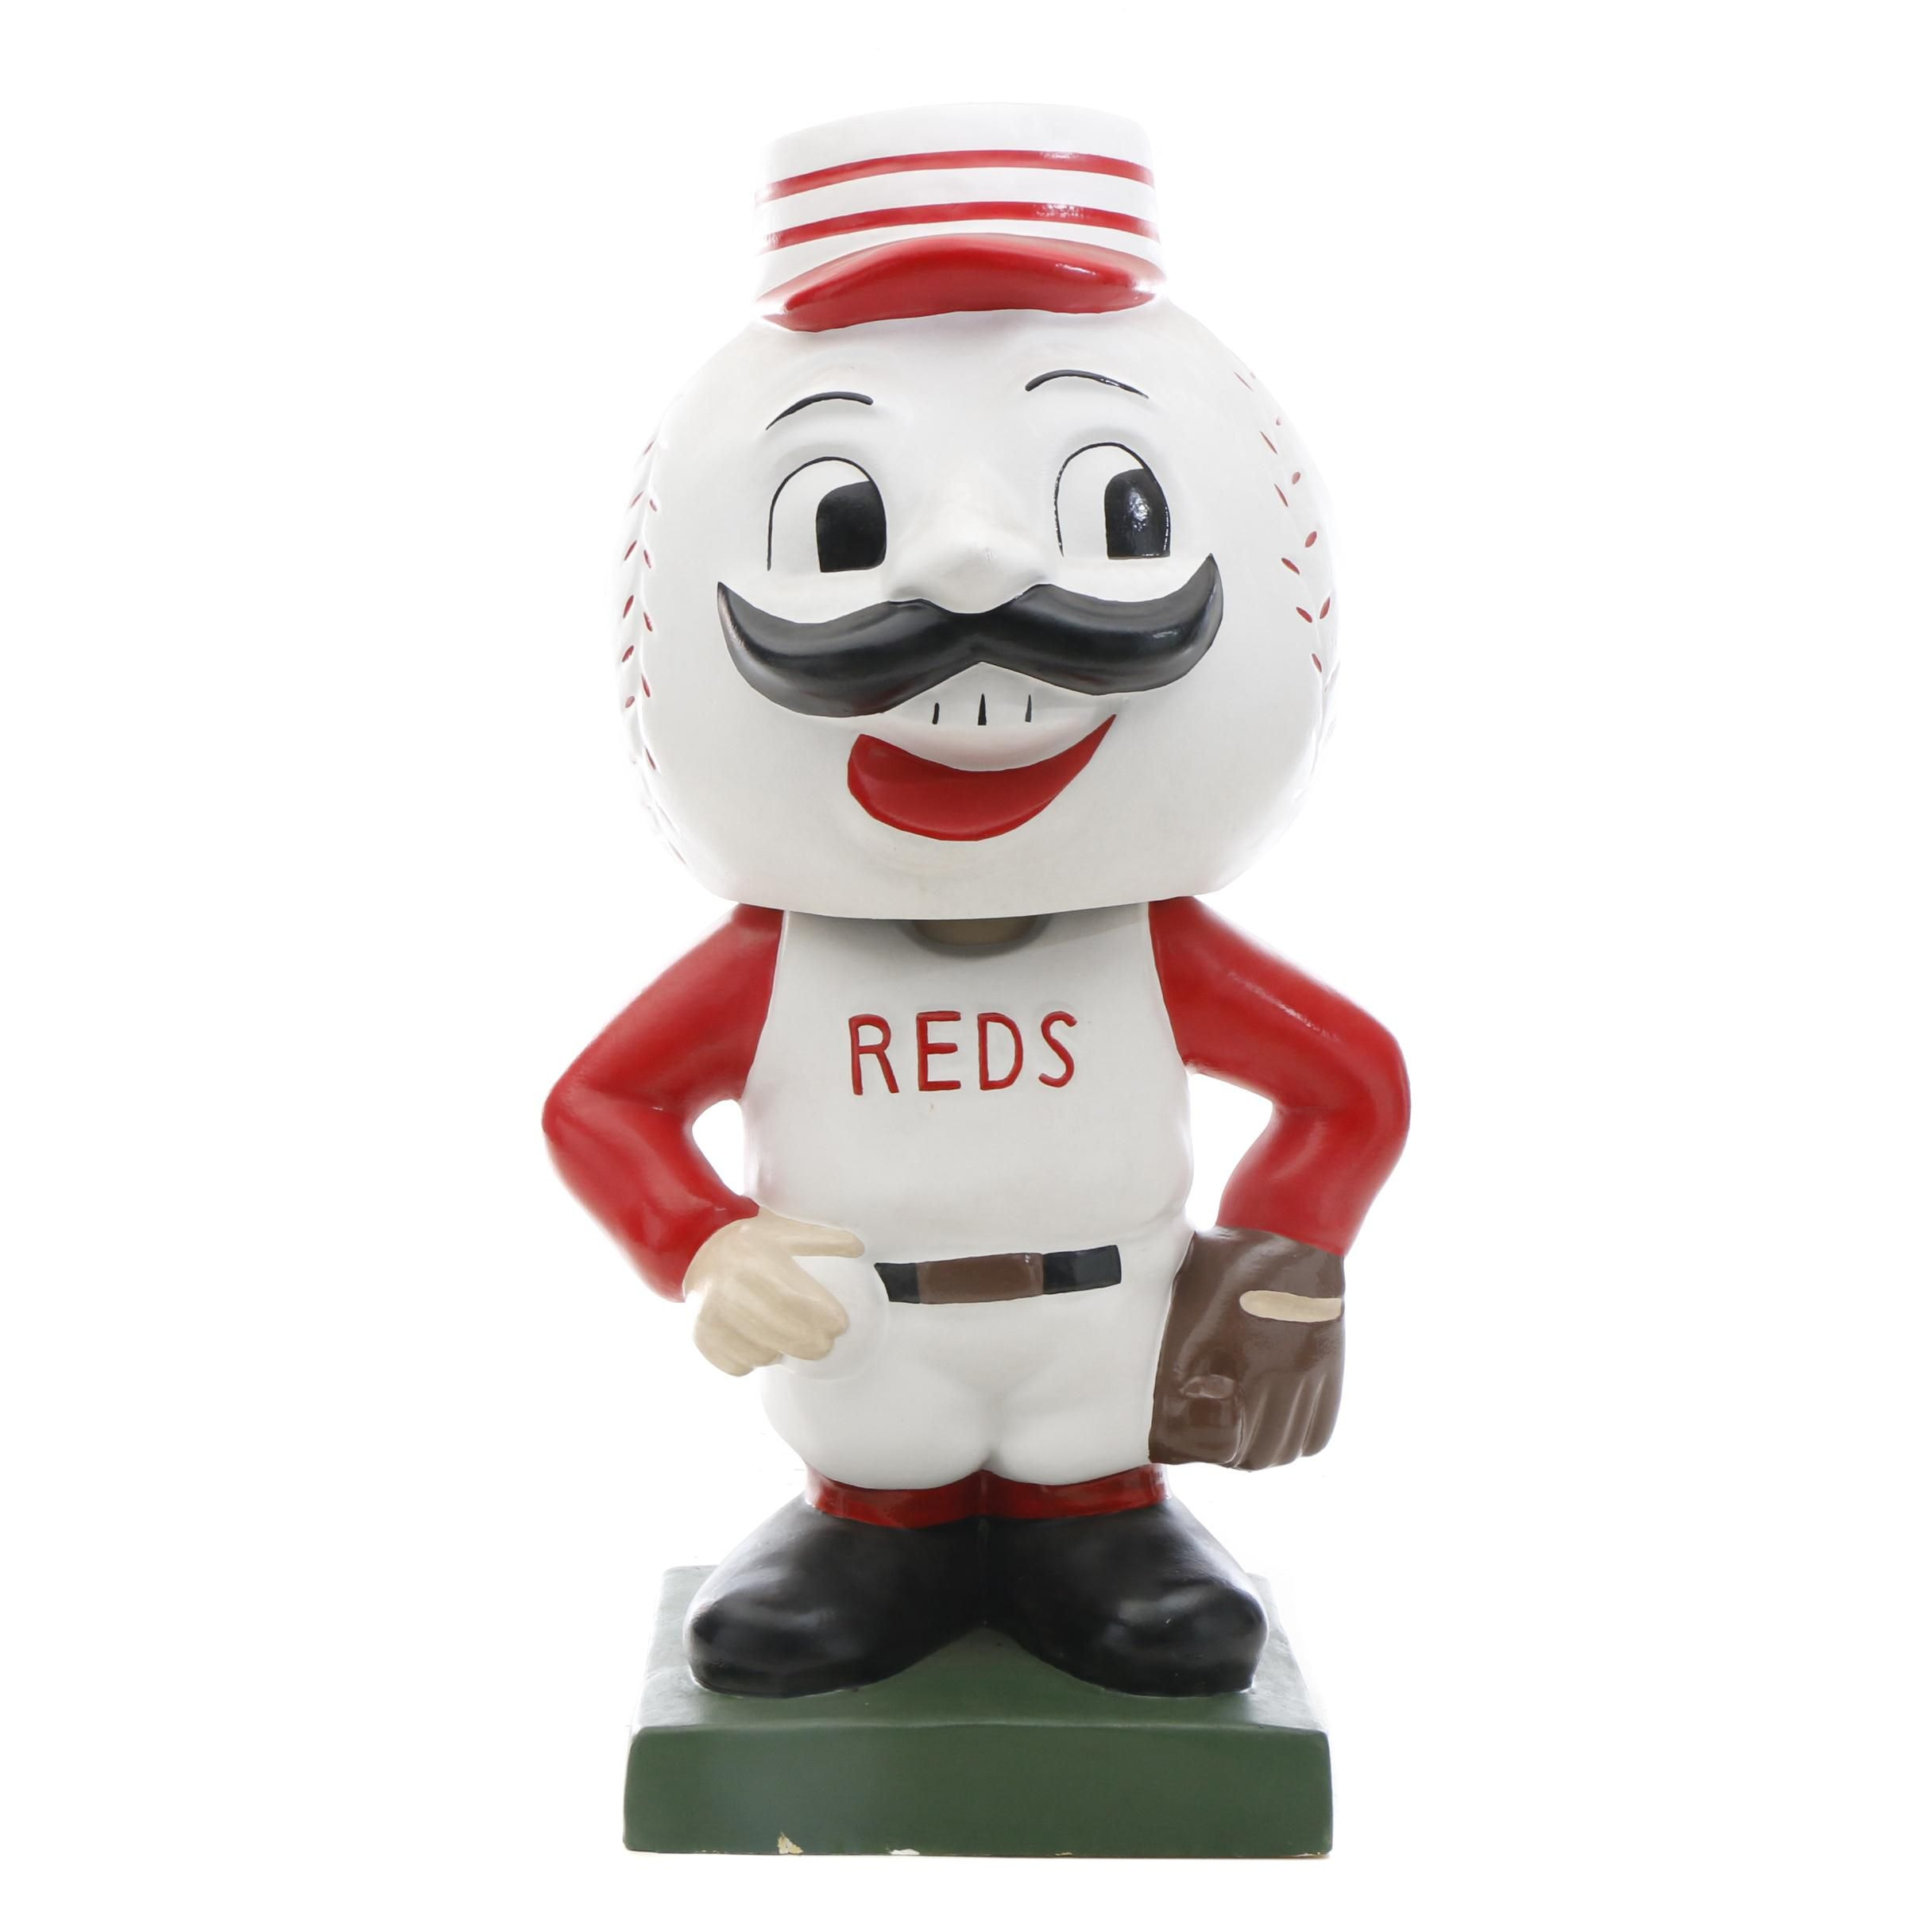 """Massive 2016 """"Mr. Redlegs"""" Exhibit Bobblehead Doll From Reds Hall of Fame"""